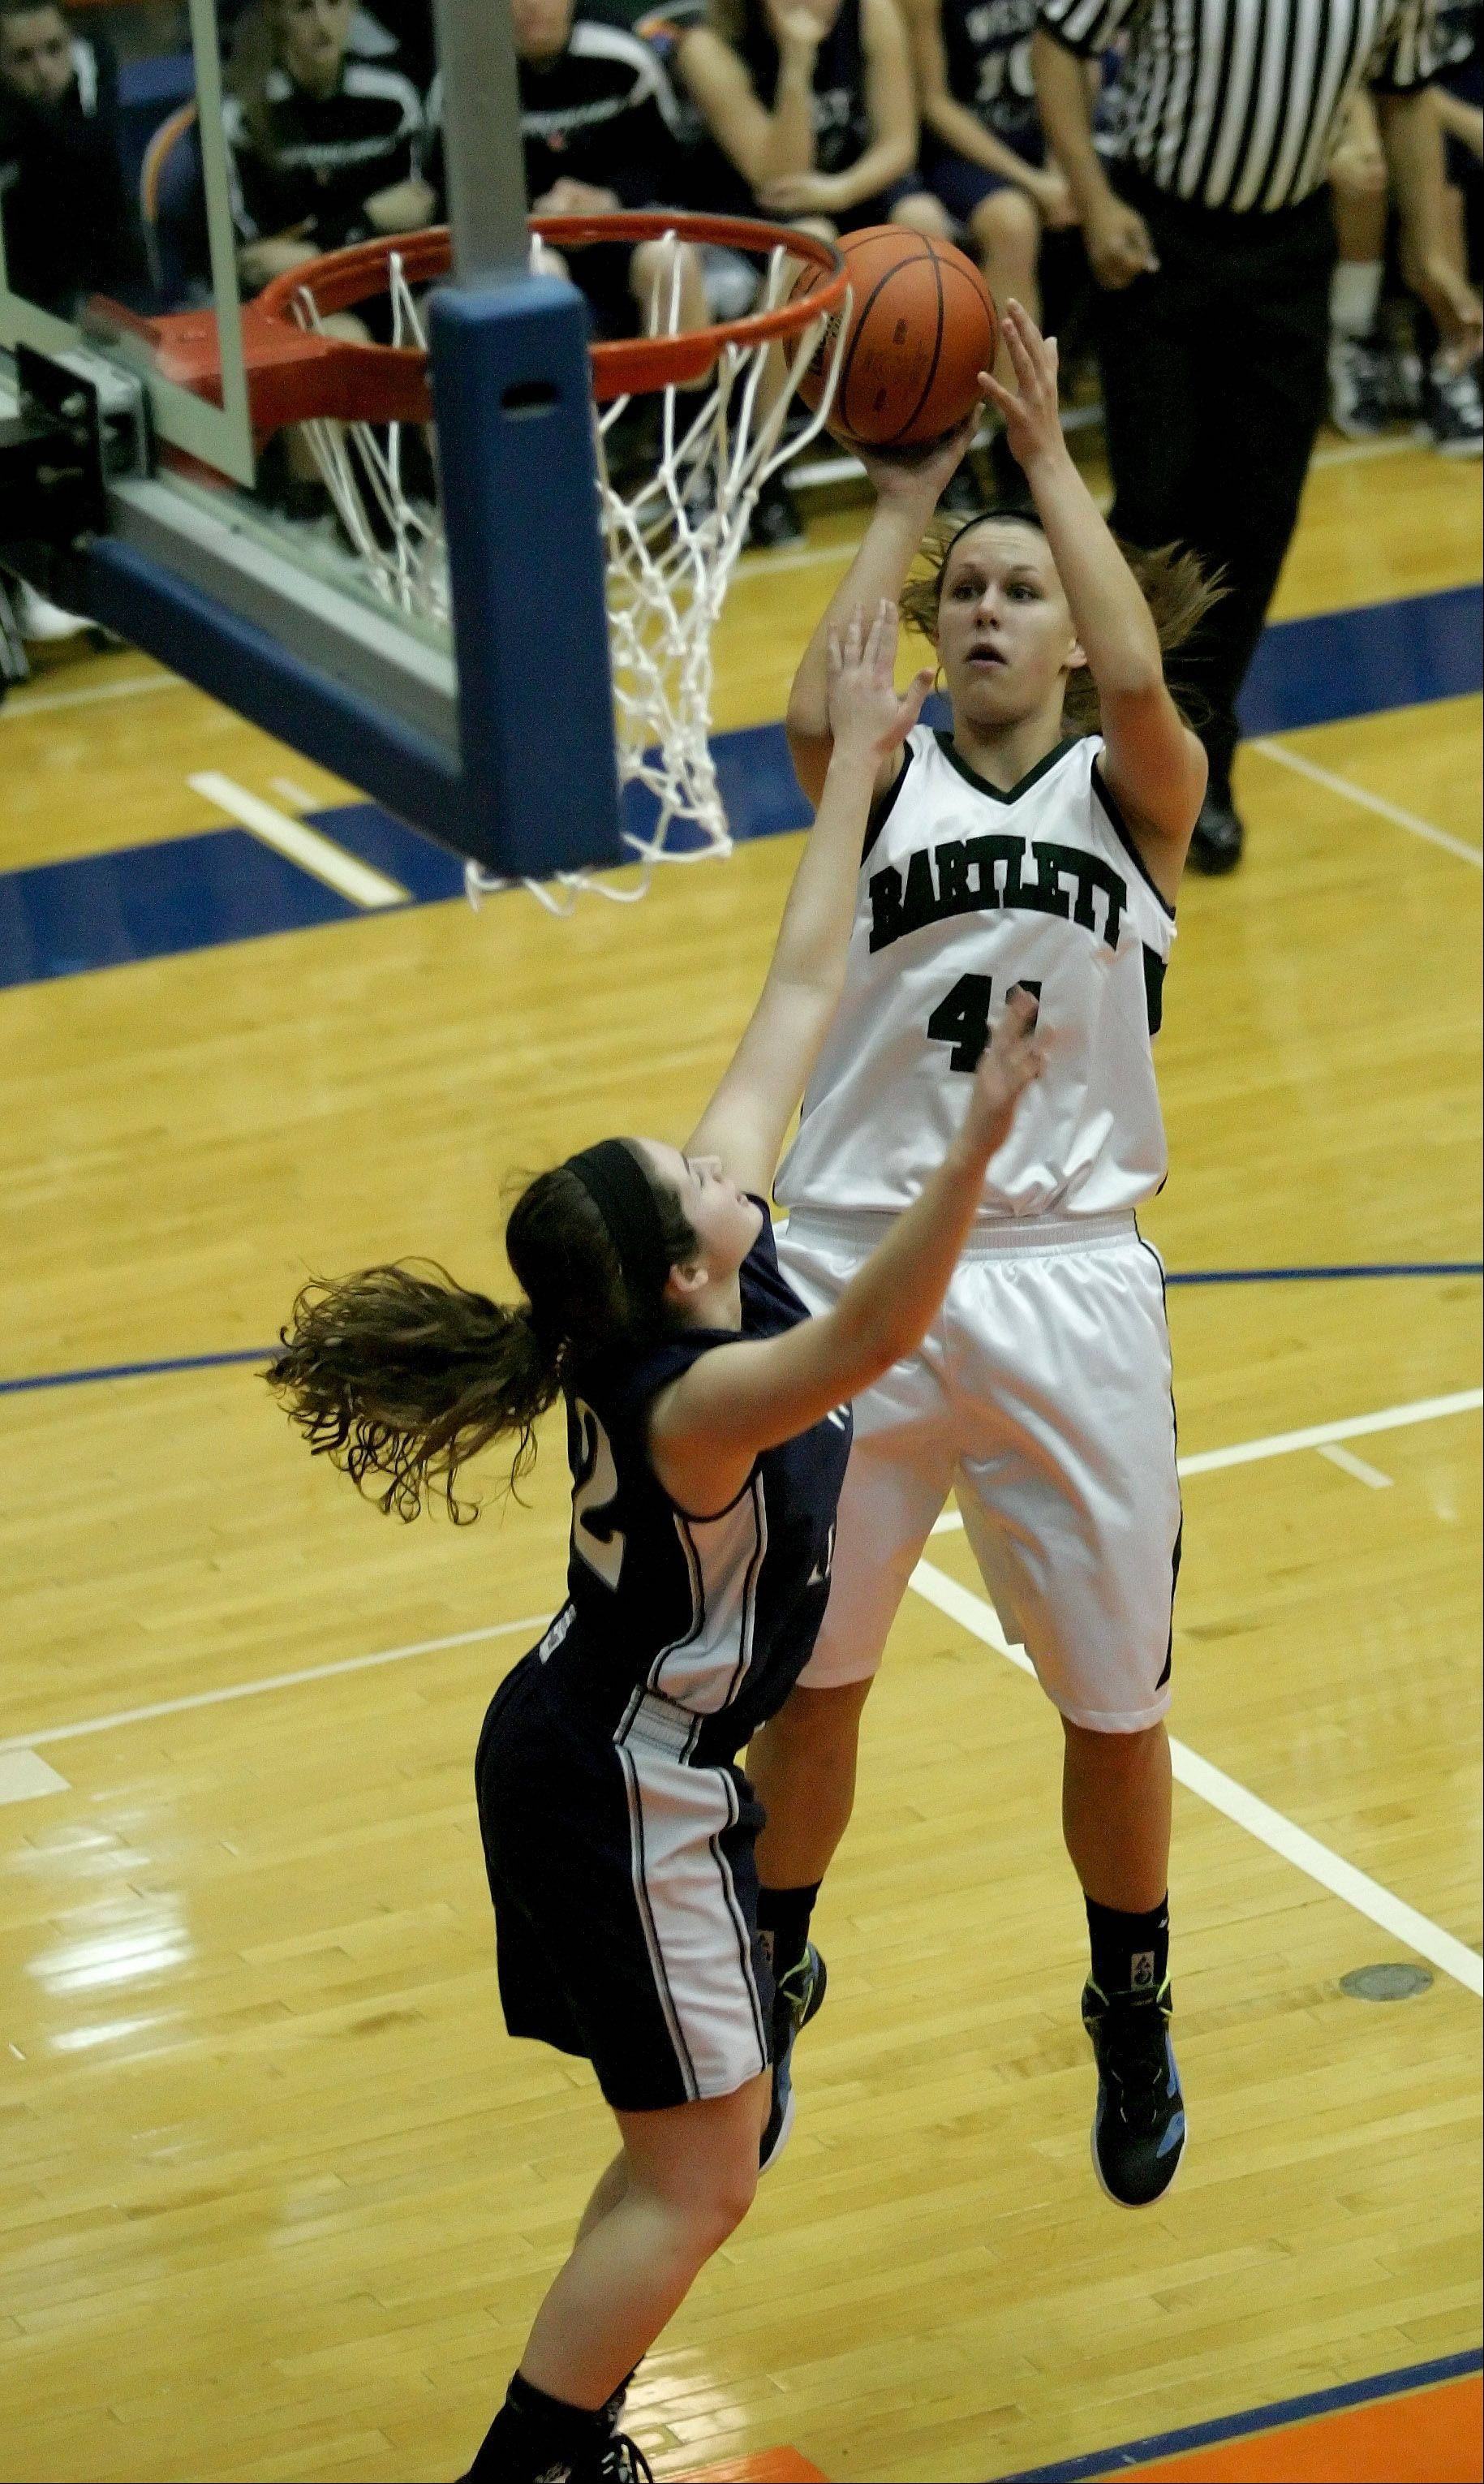 Lisa Palmer of Bartlett shoots the ball over Emily Warkins of West Chicago.